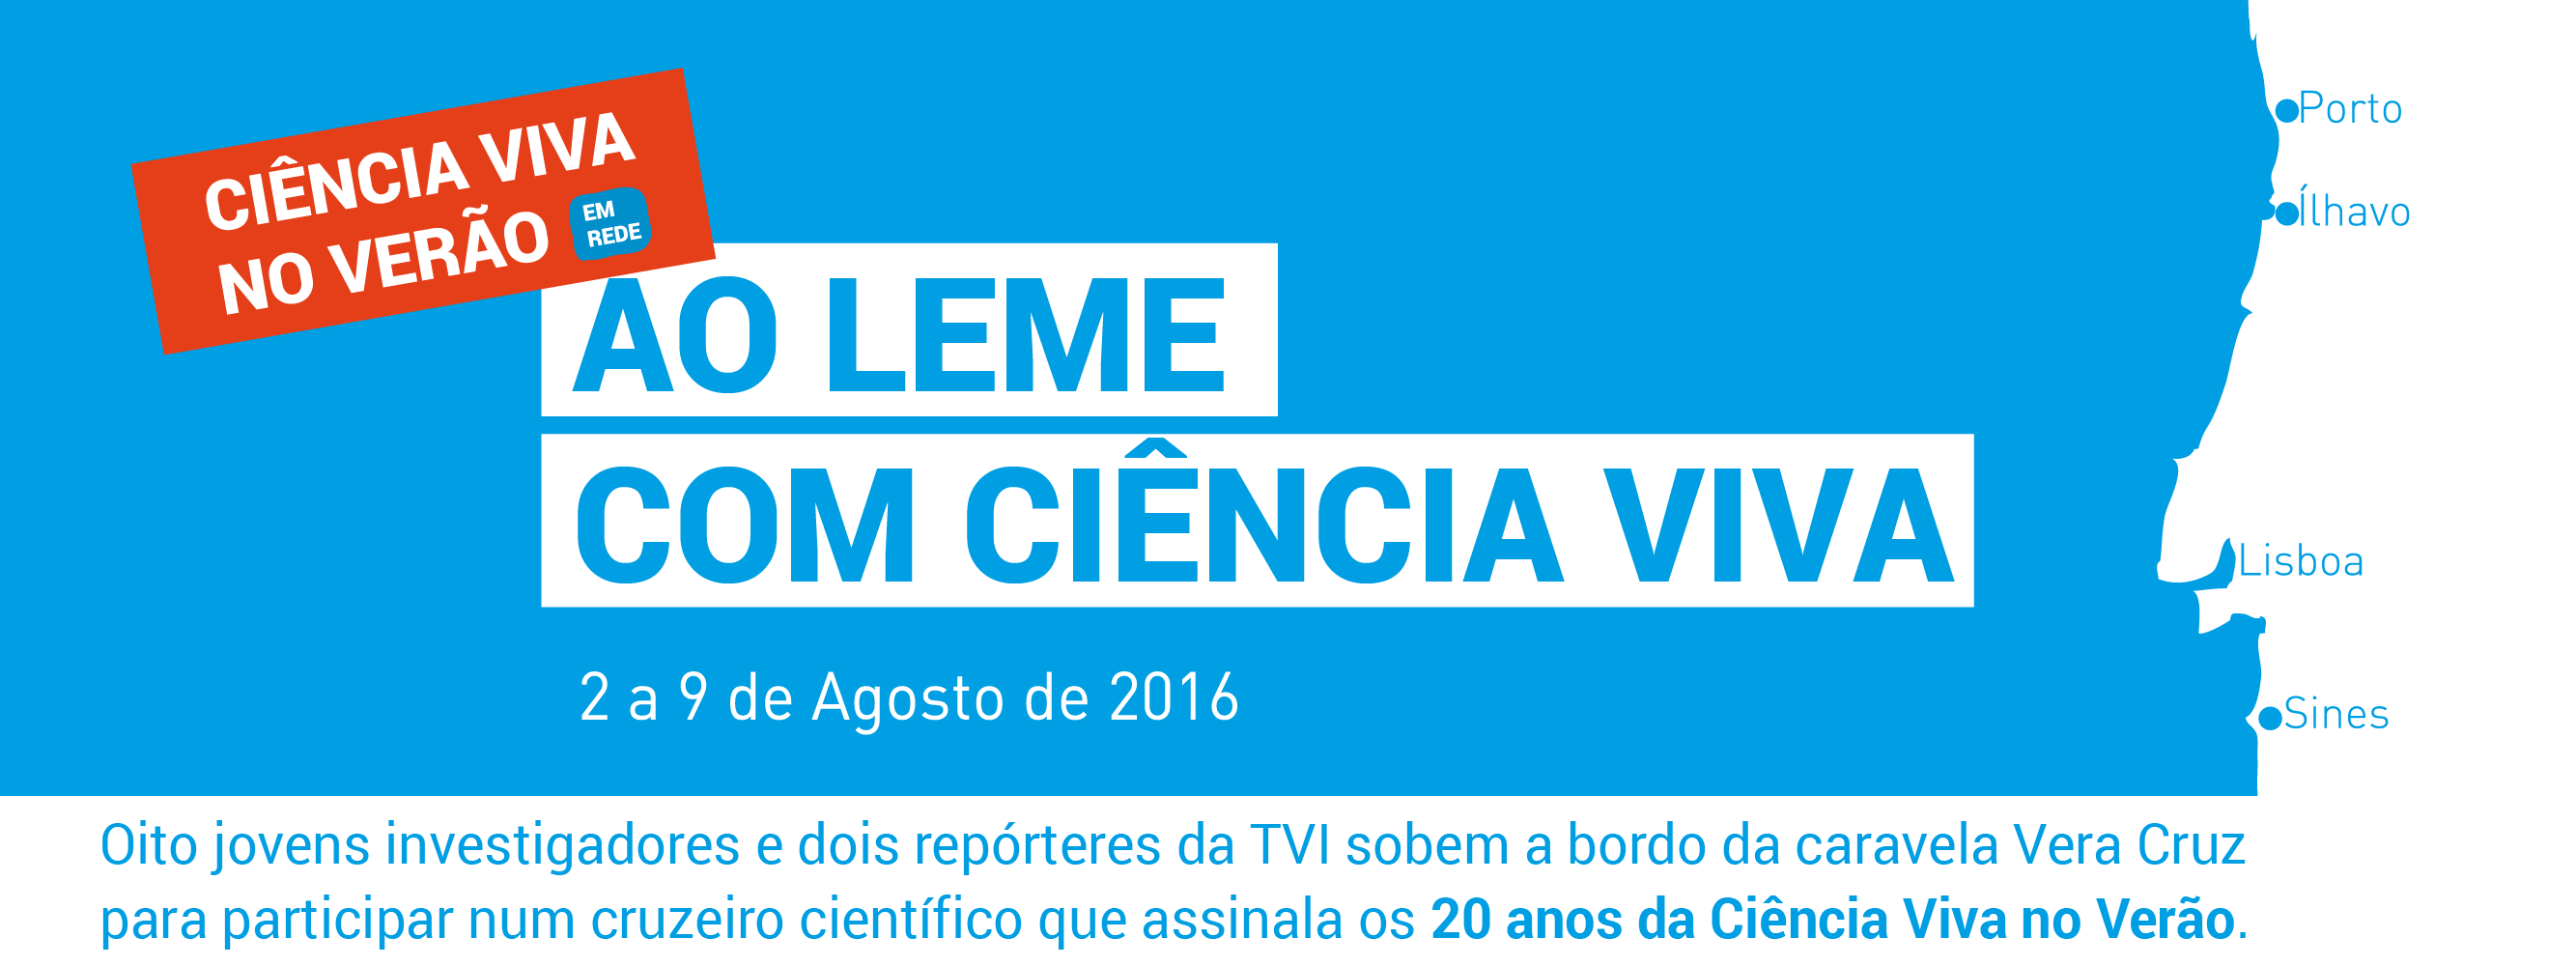 http://aoleme.cienciaviva.pt/wp-content/uploads/2016/08/AoLemeComCienciaViva_1280.png